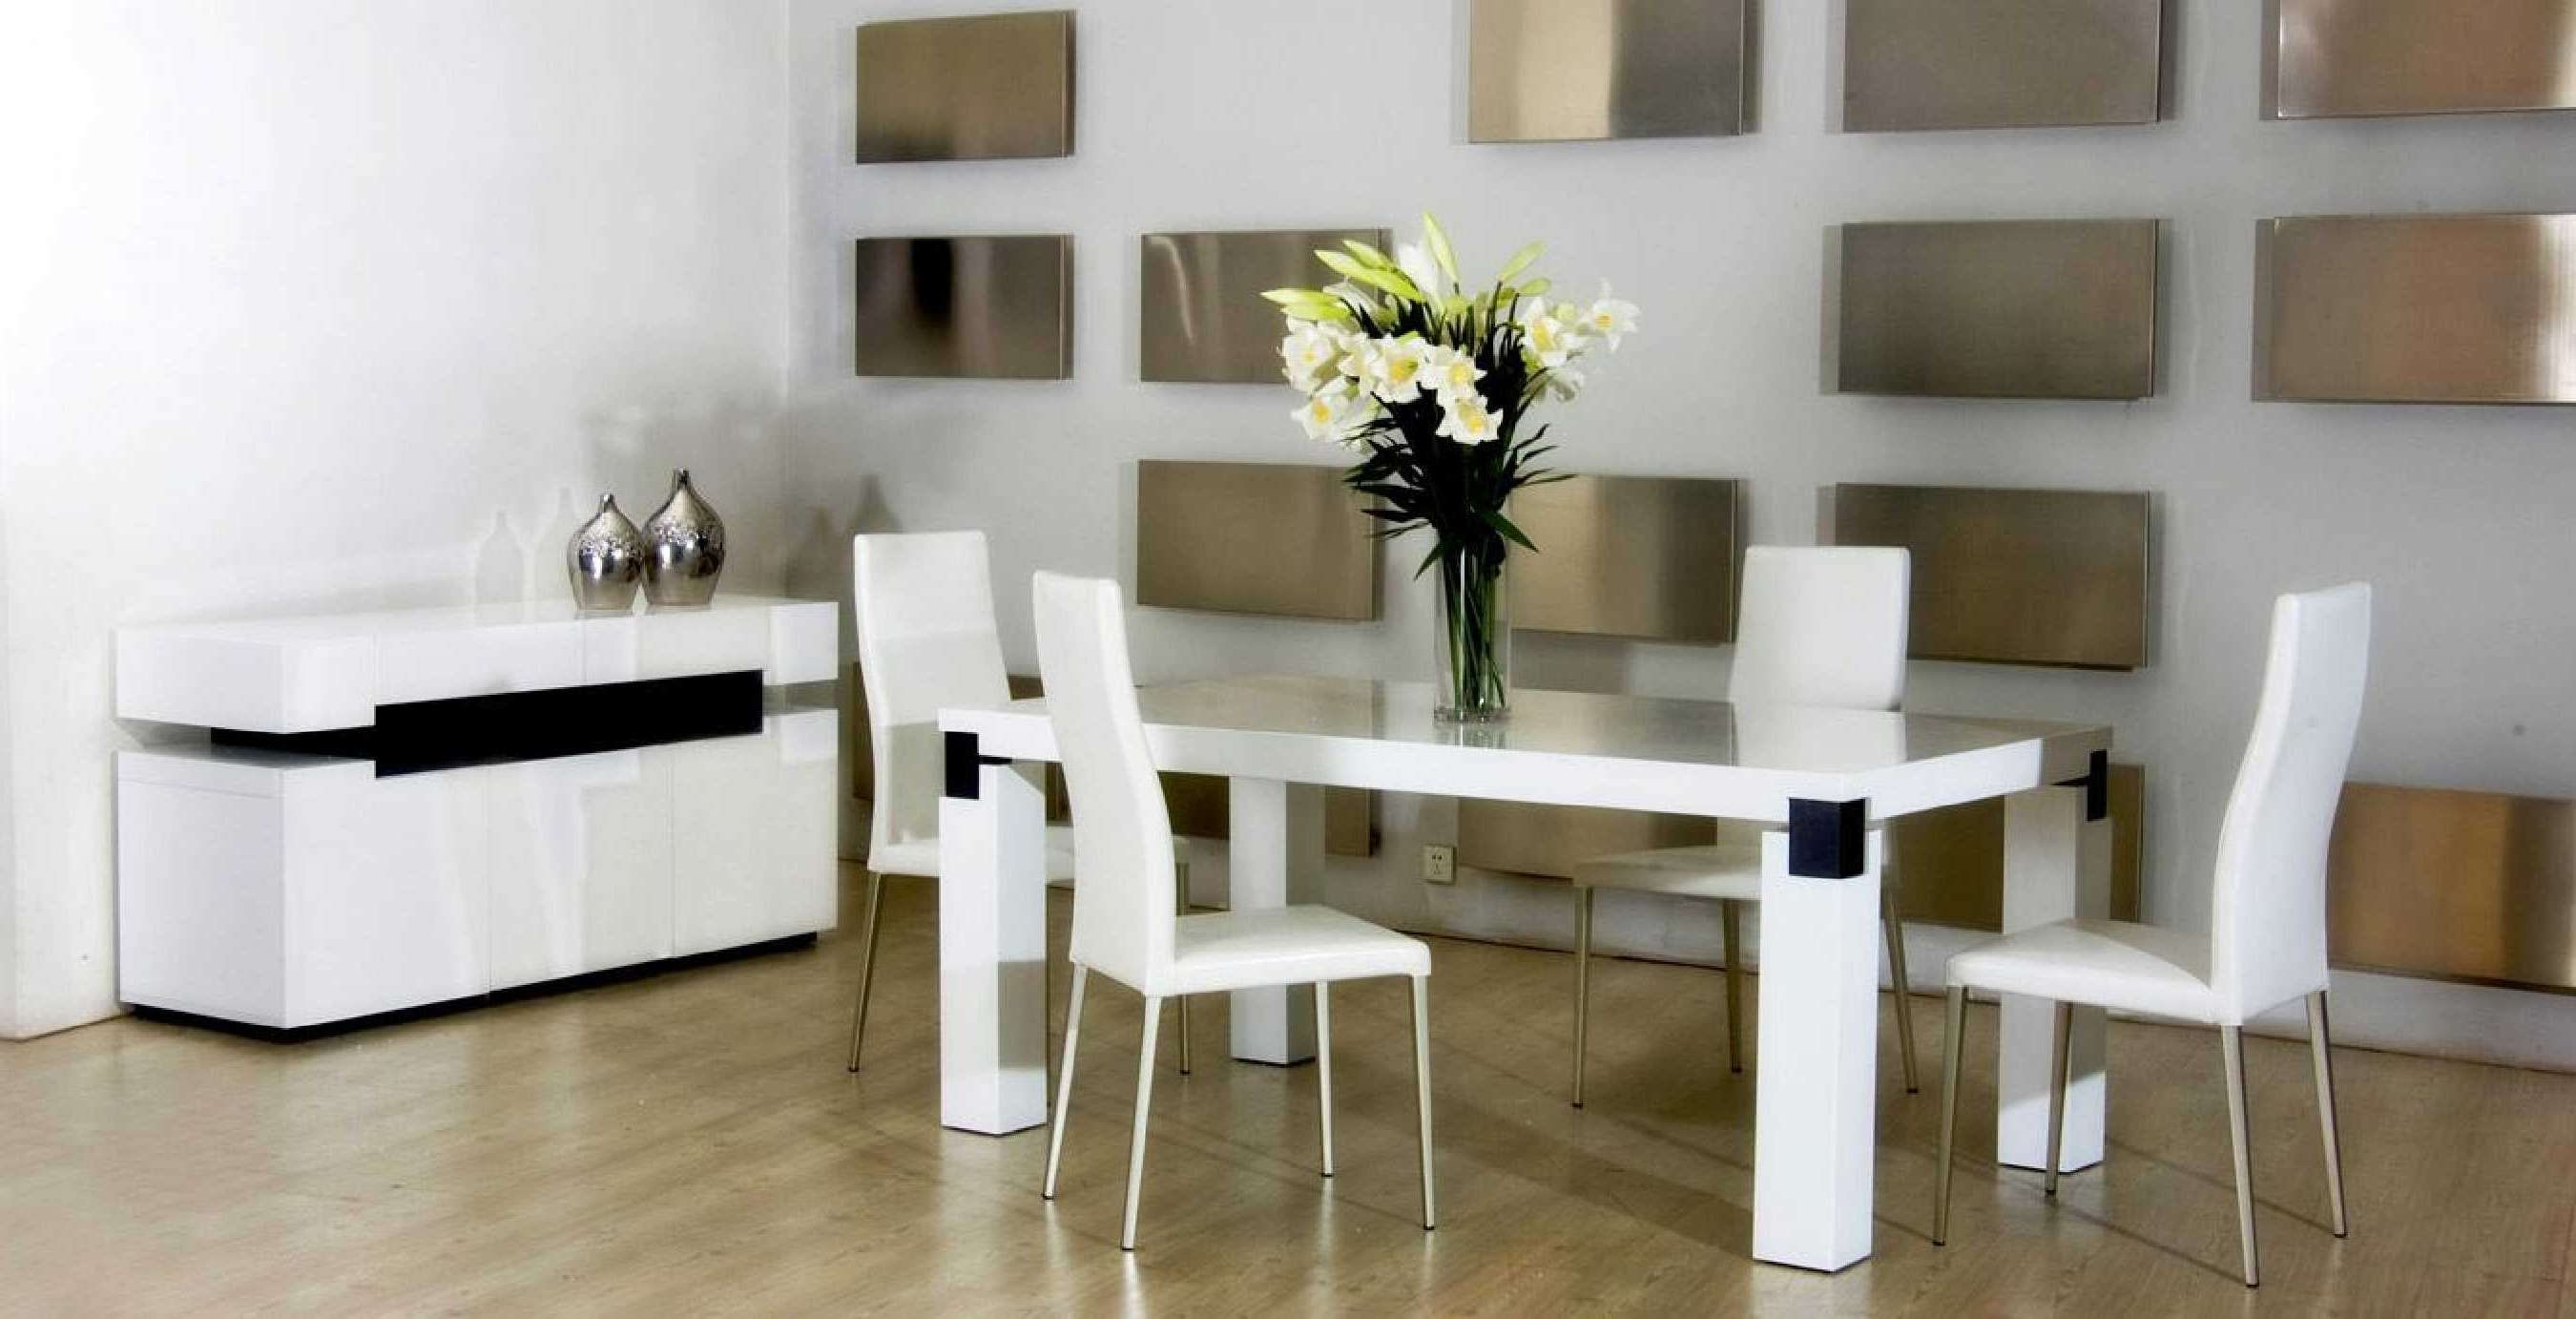 Alliancemv – Design Chairs And Dining Room Table For Dining Room Sets With Sideboards (View 10 of 20)